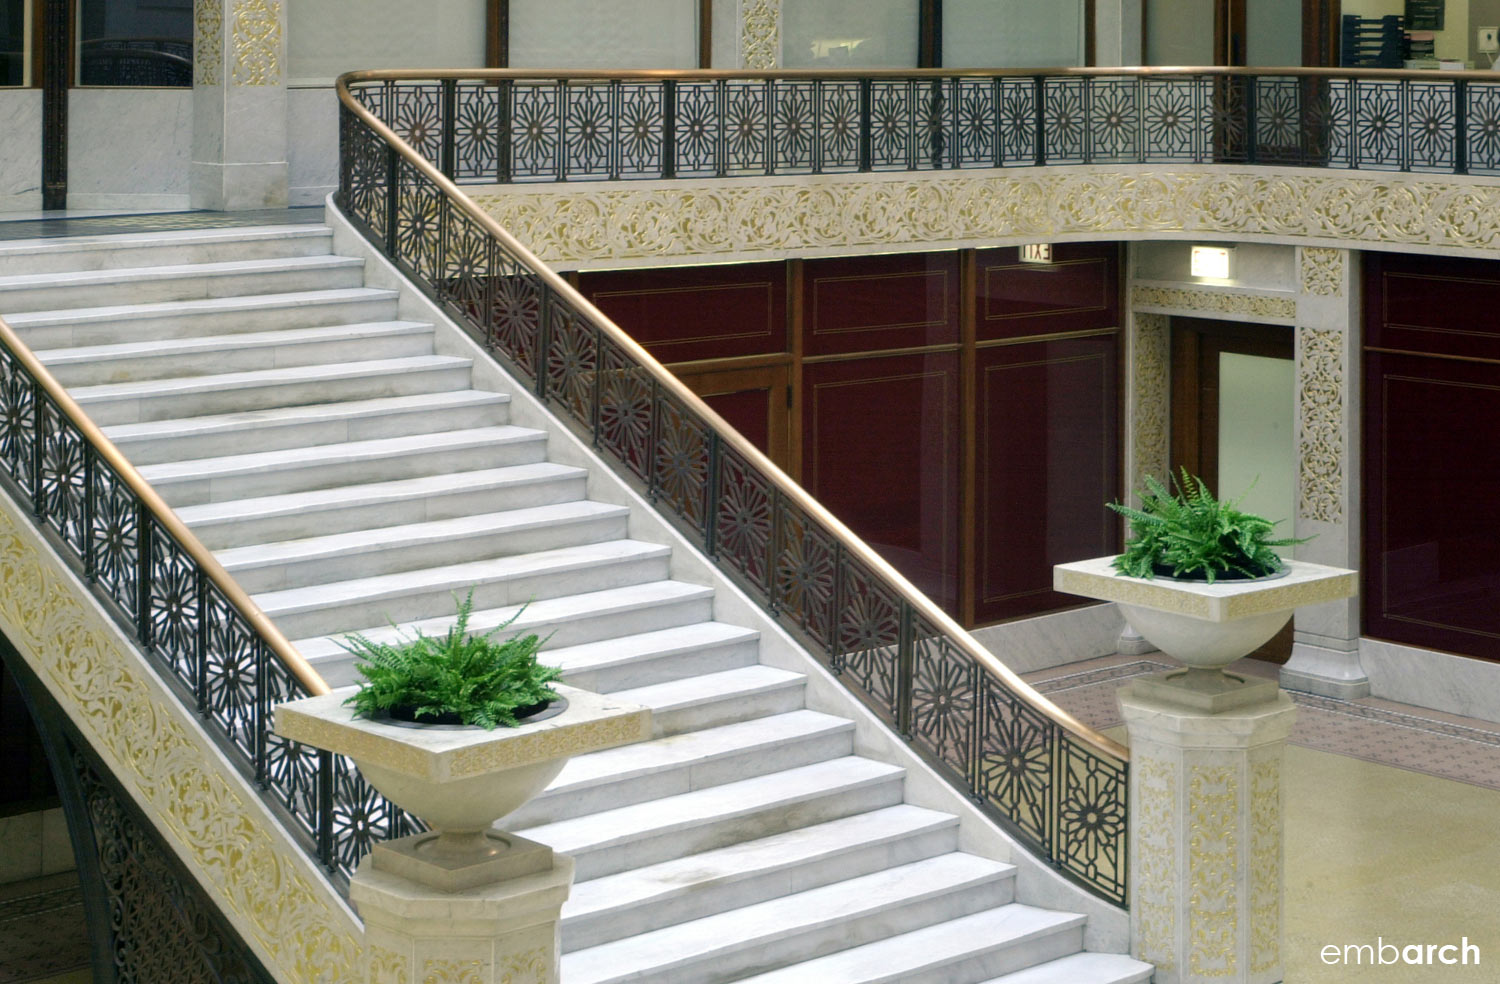 Rookery Building - interior lobby stair detail